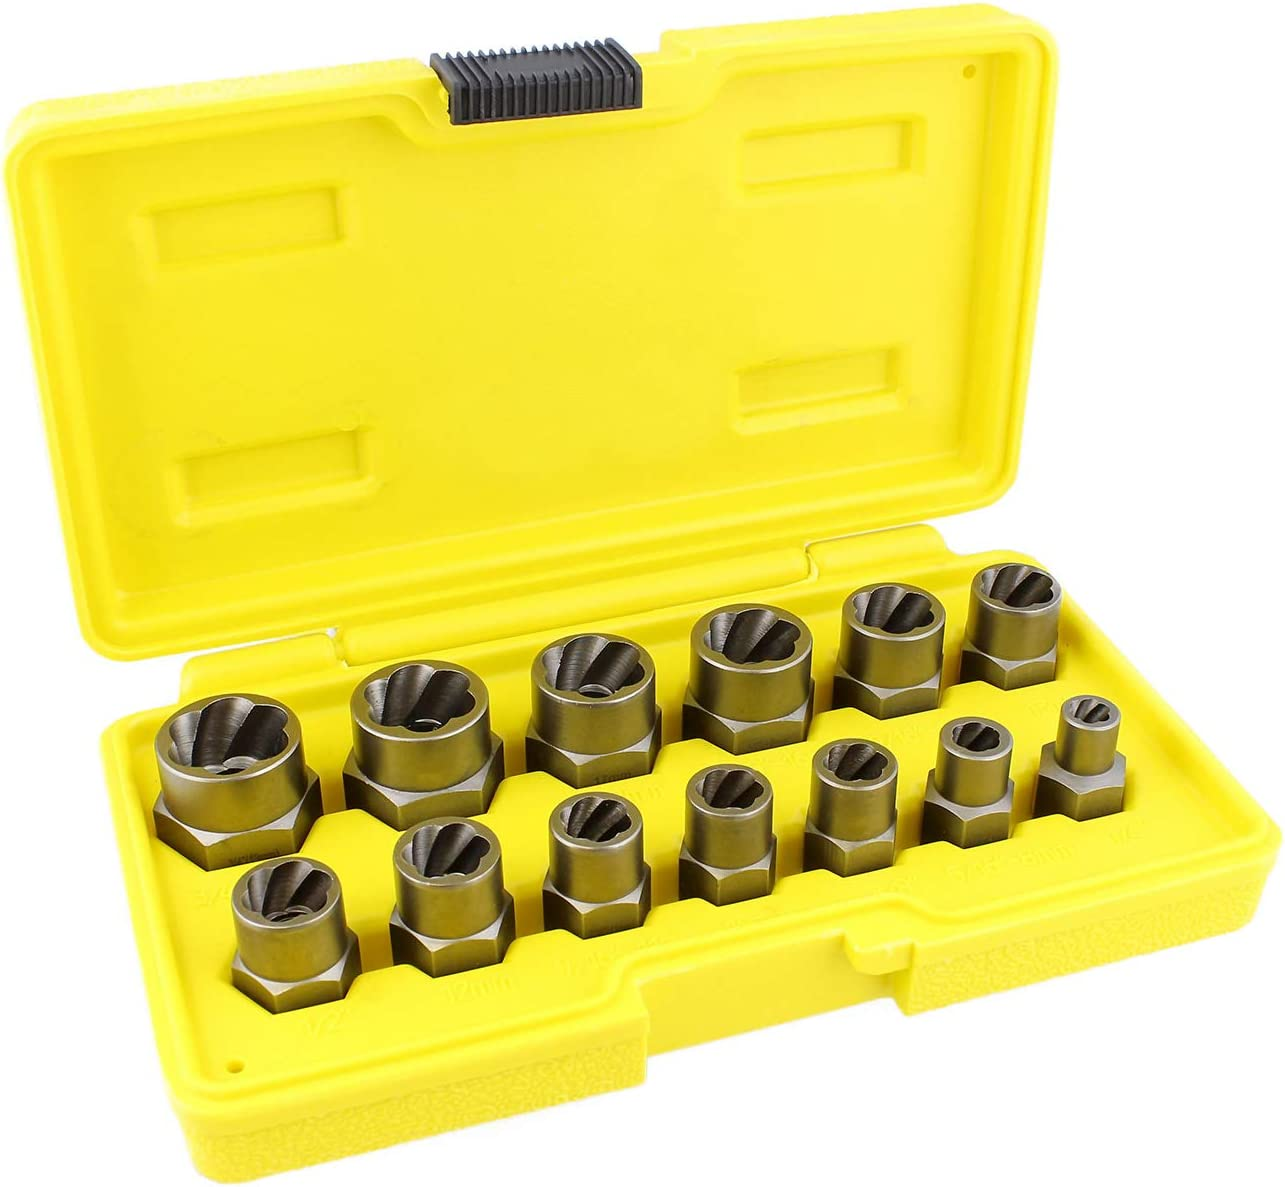 Small Product Image of ABN 60-Piece Set